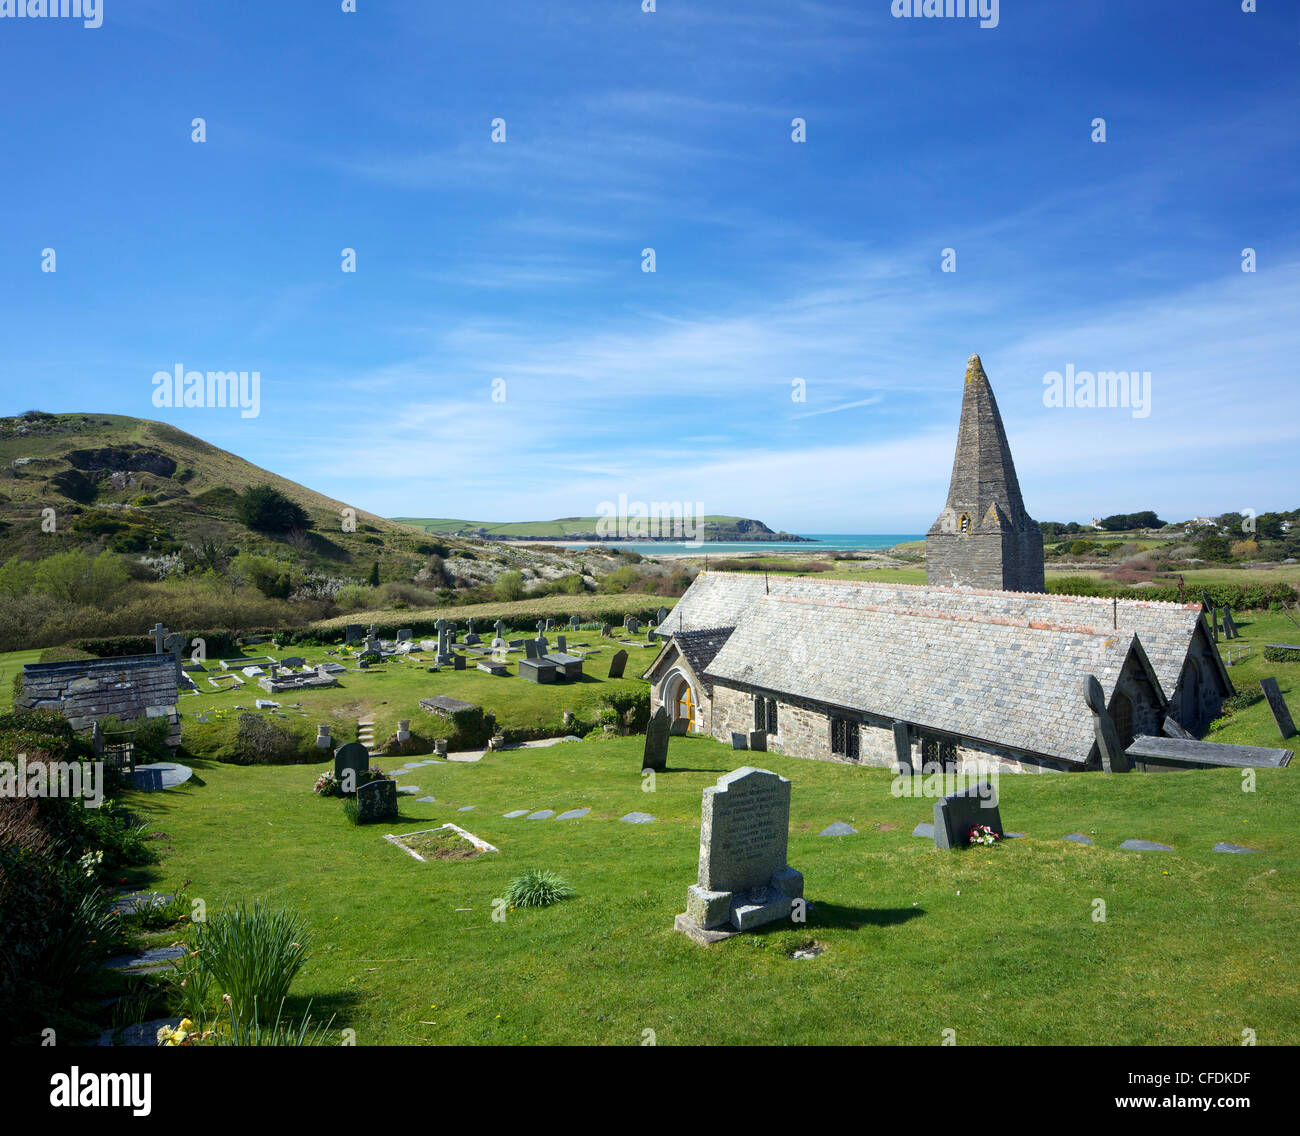 Views of Camel Estuary from the churchyard, St. Enodoc Church, Rock, North Cornwall, England, United Kingdom, Europe - Stock Image